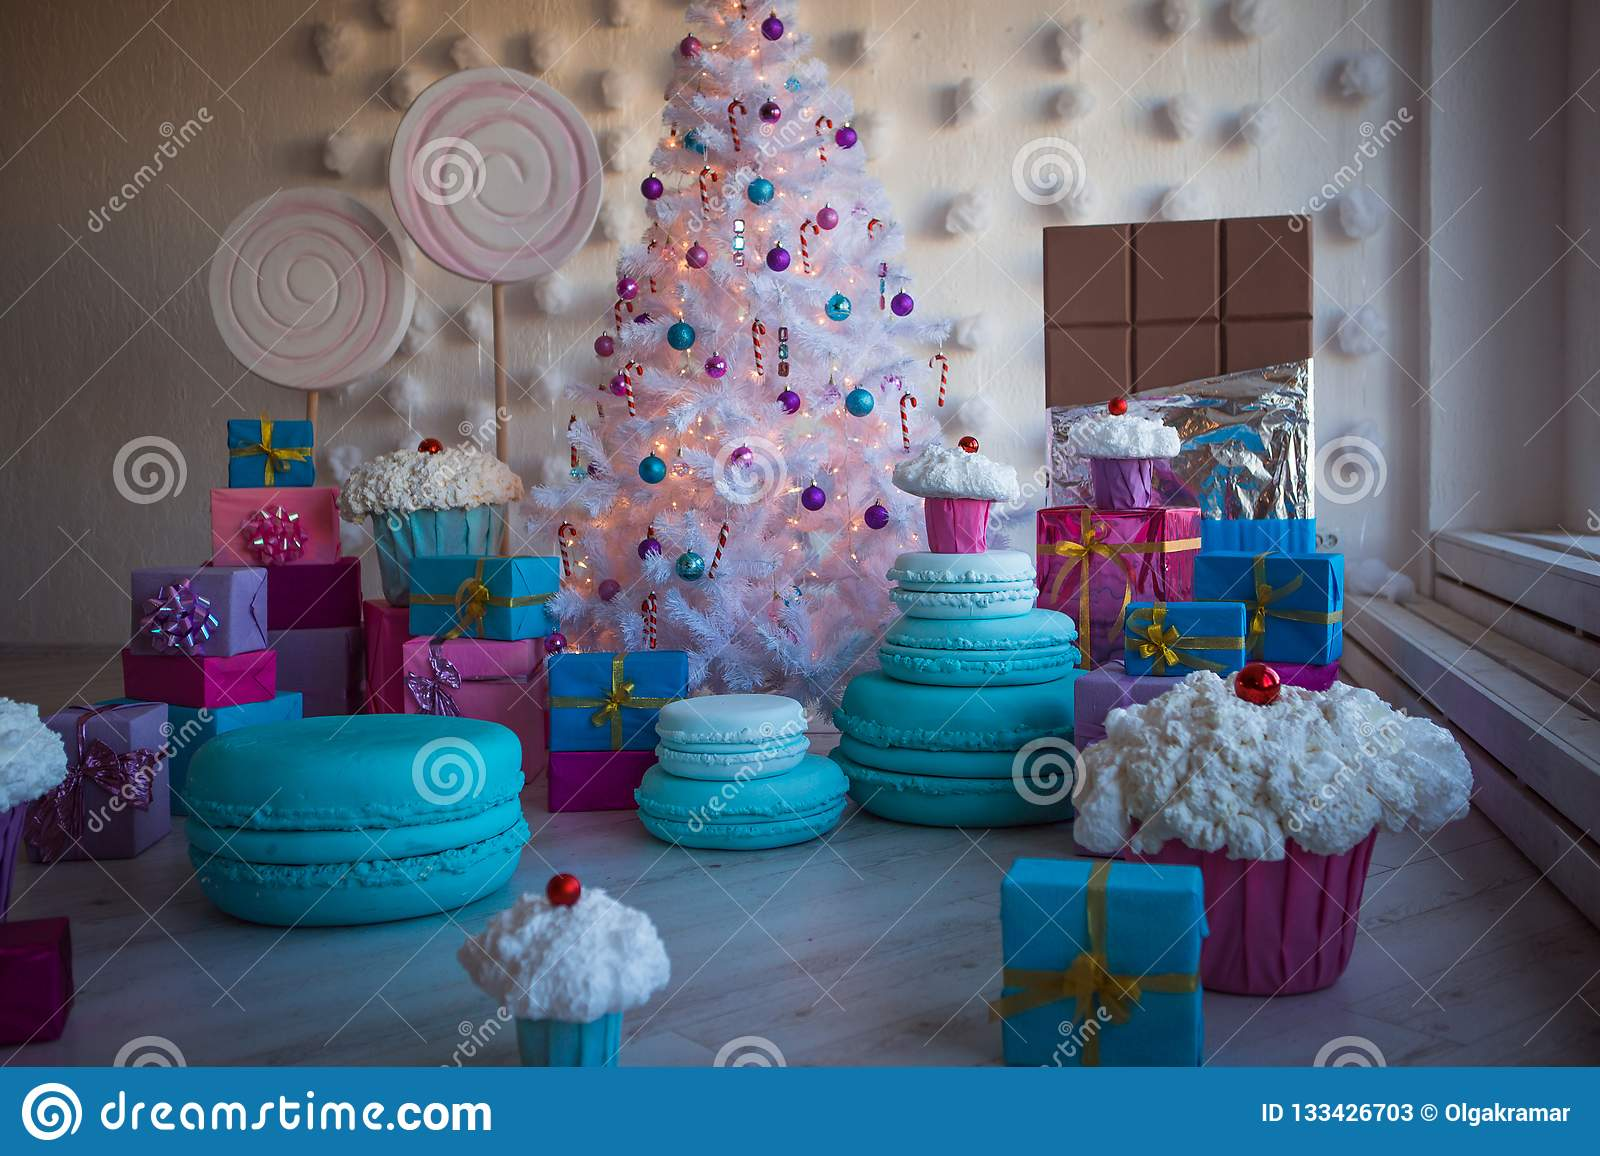 Christmas Decorations In The Form Of Cakes And Large Chocolate Christmas Toys On A White Artificial Christmas Tree Stock Image Image Of Birthday Cupcake 133426703